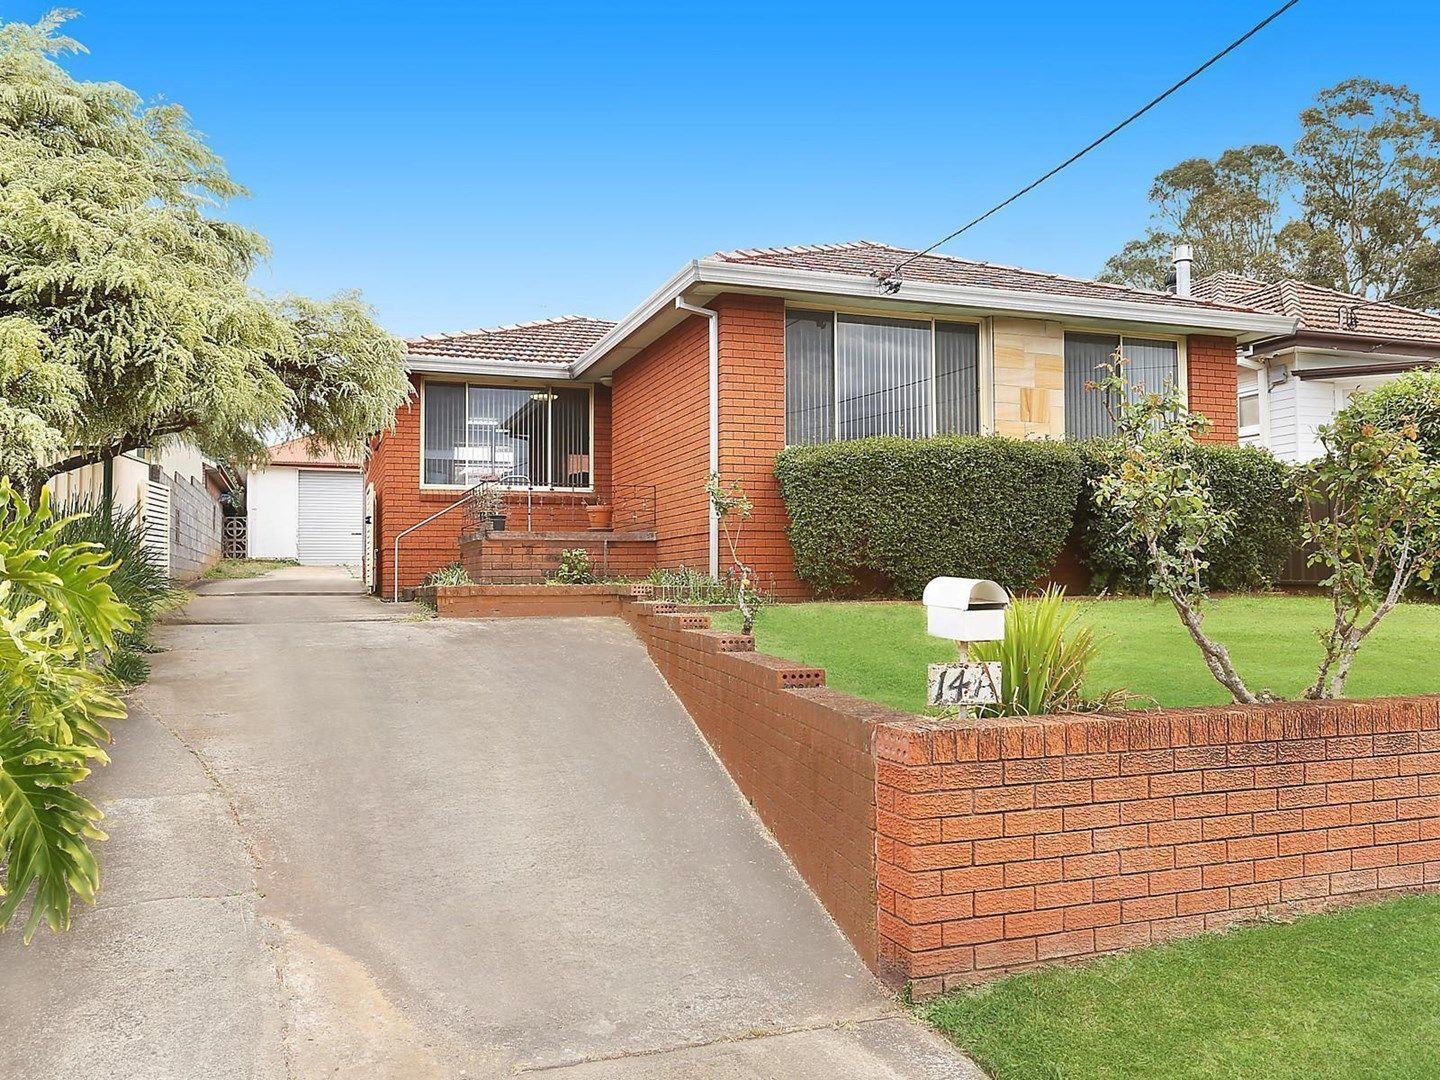 14A Ashmead Avenue, Revesby NSW 2212, Image 0